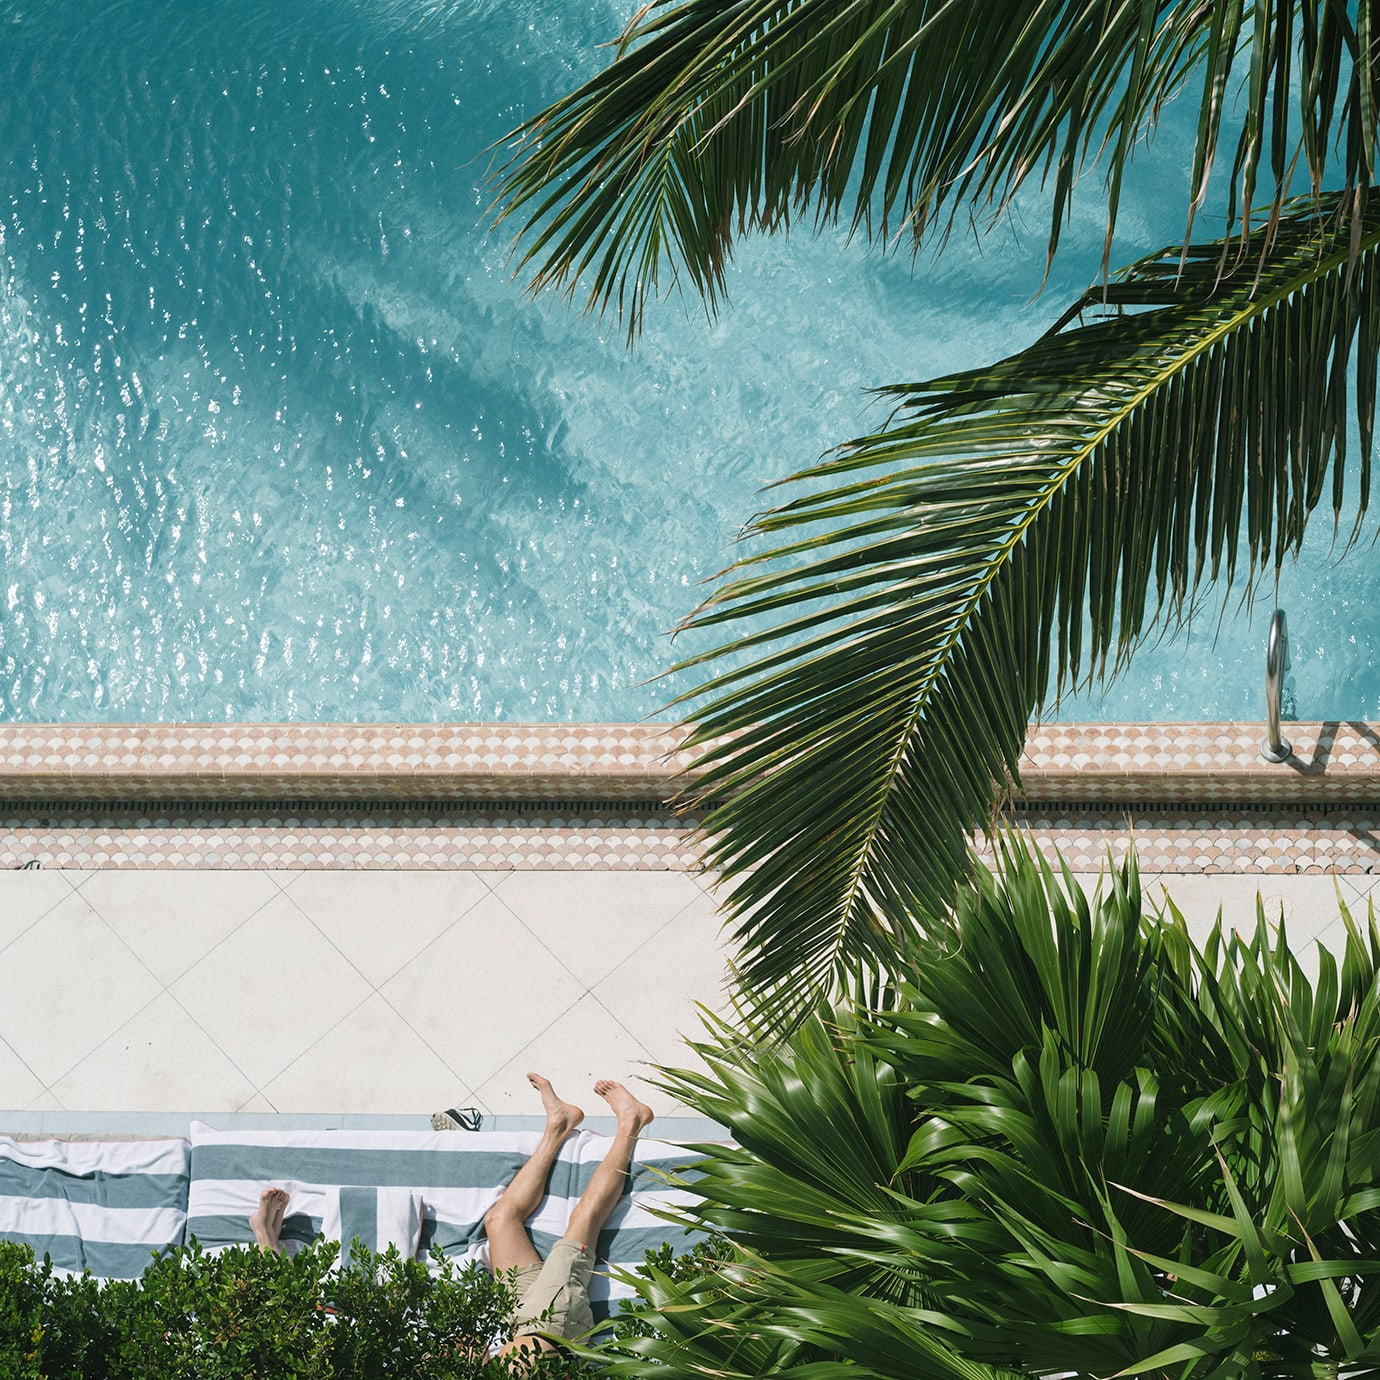 Looking down onto a pool through some trees and a lounger with a person on it.